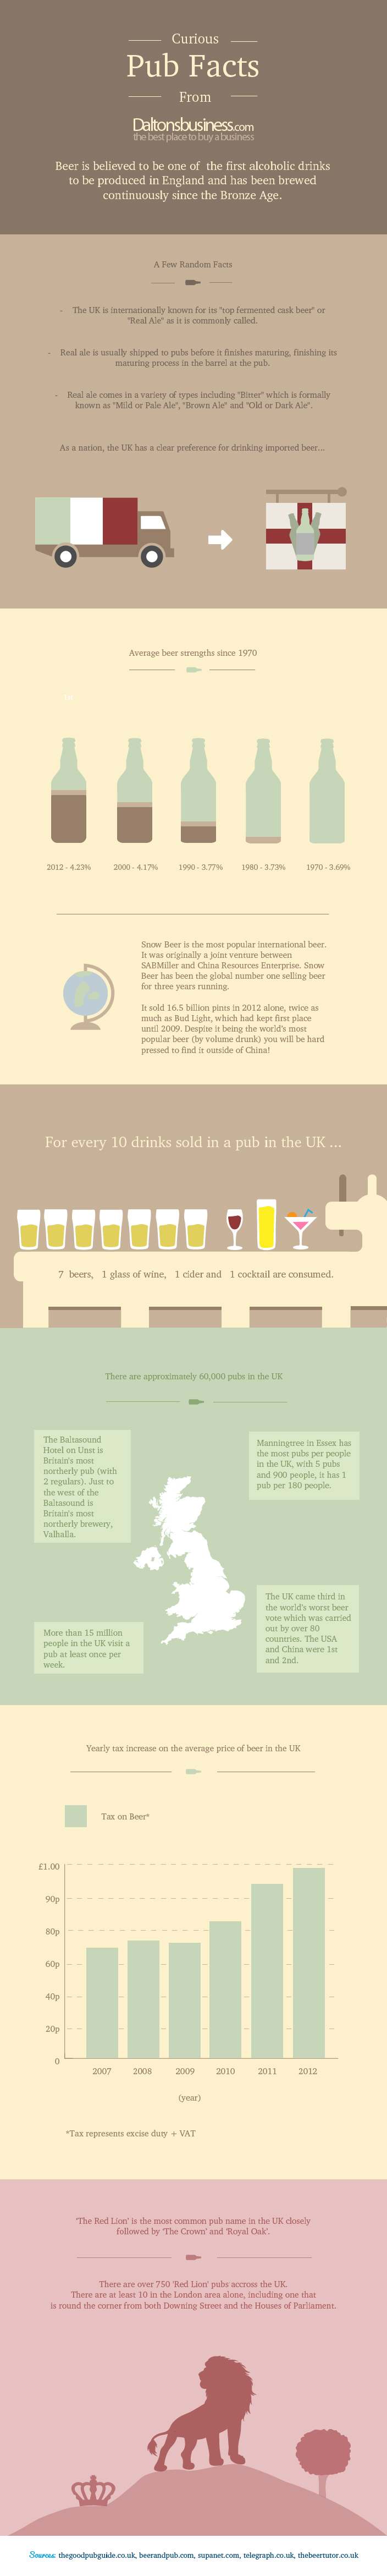 Curious Pub Facts